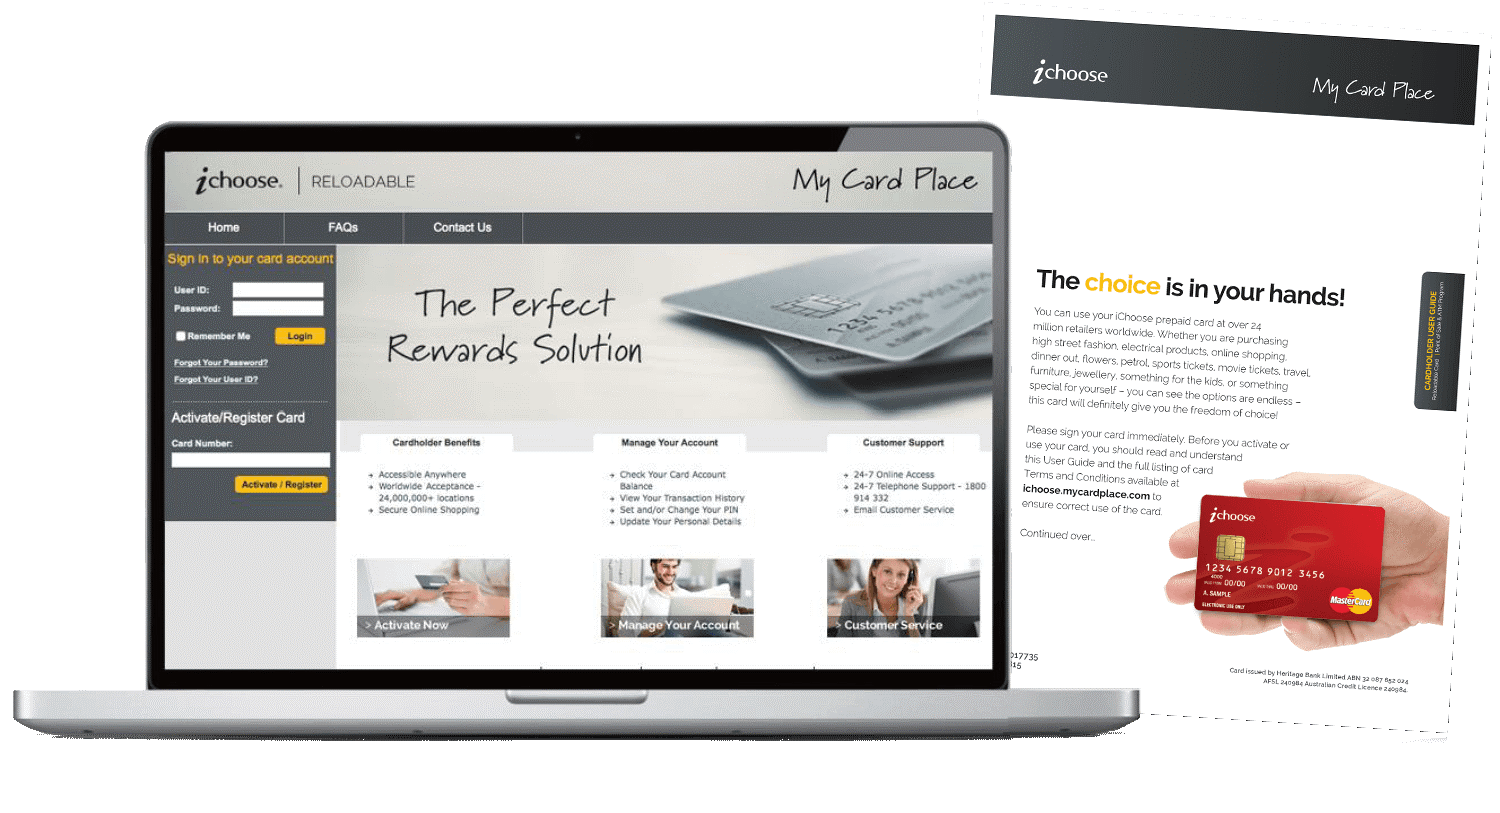 ichoose visa card. The perfect rewards solution